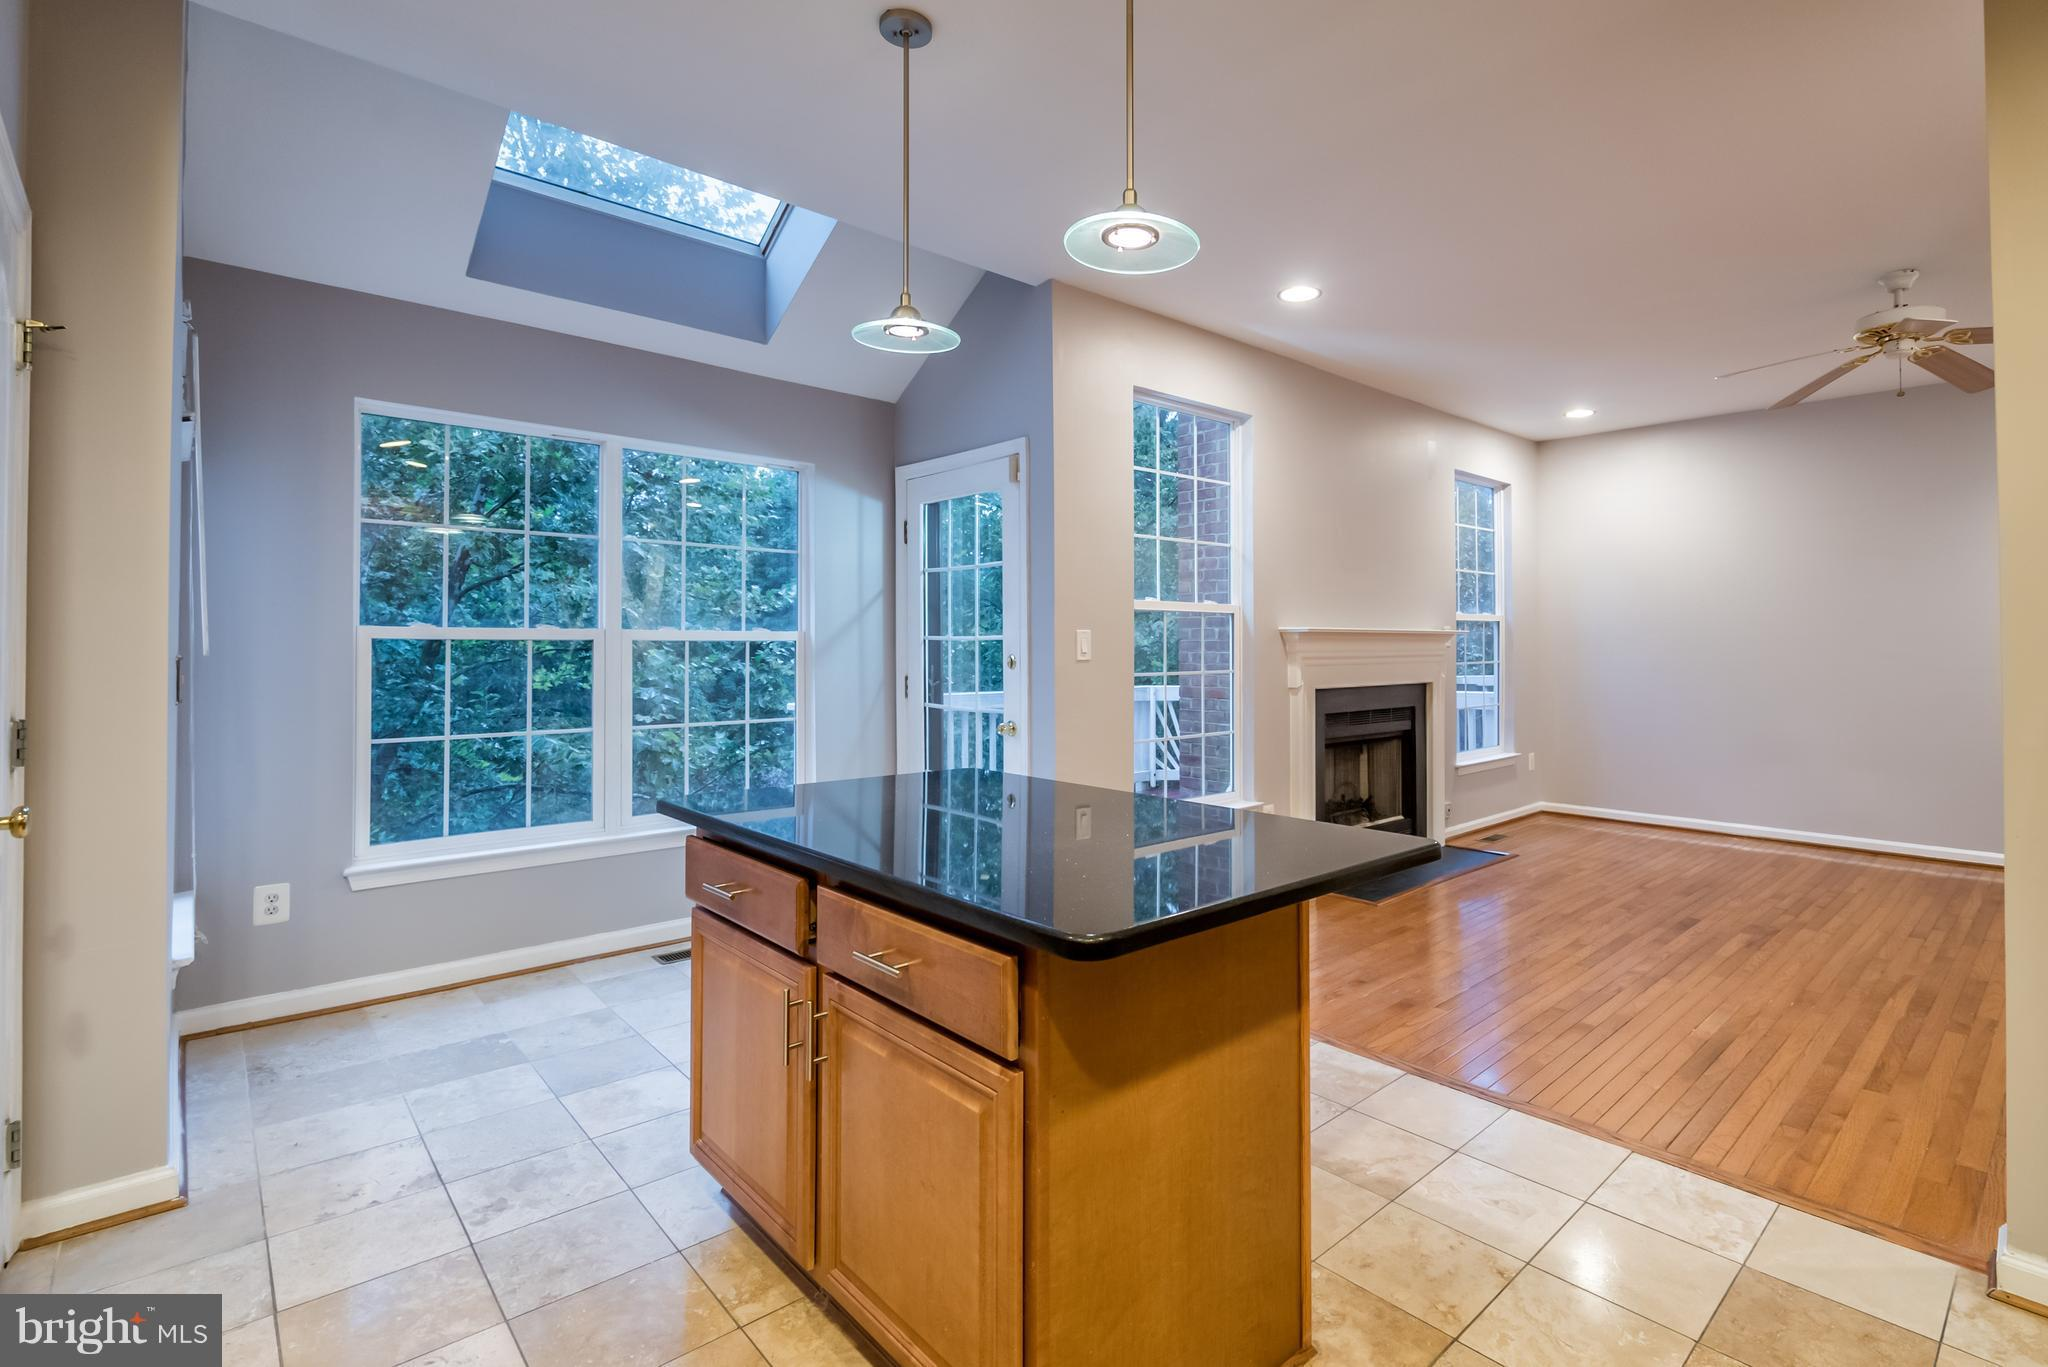 43619 DUNHILL CUP SQUARE, Ashburn, VA 20147 | Amy Summersgill